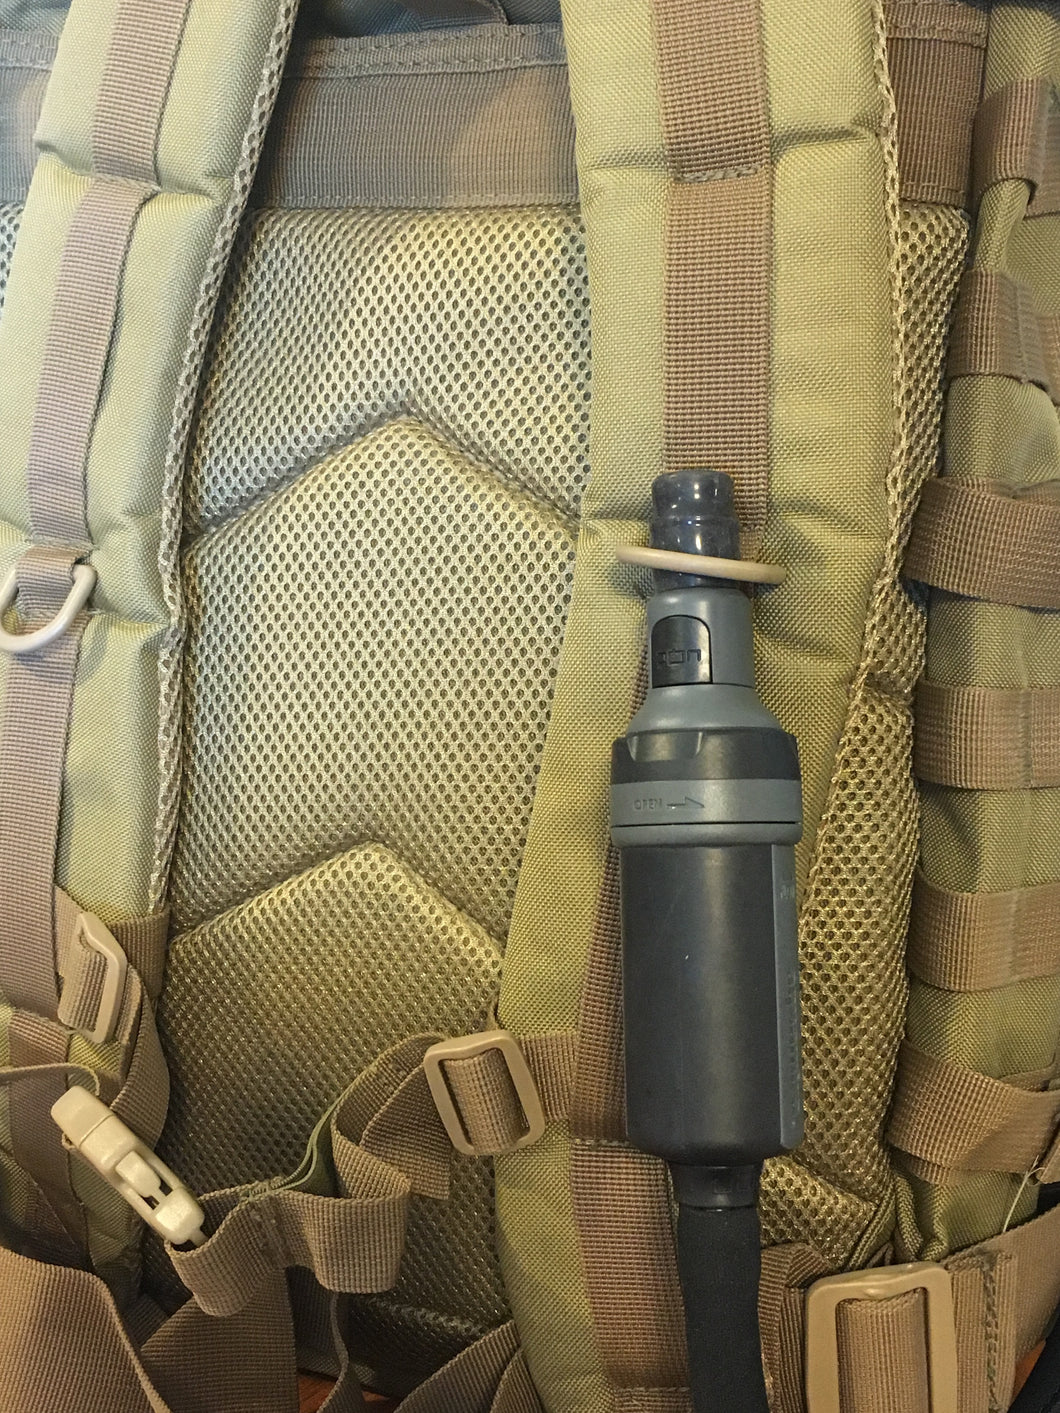 Aquamira Frontier MAX Multi-Function Filtration System- Redline - Blackland Prairie Survival, Supply, and Surplus